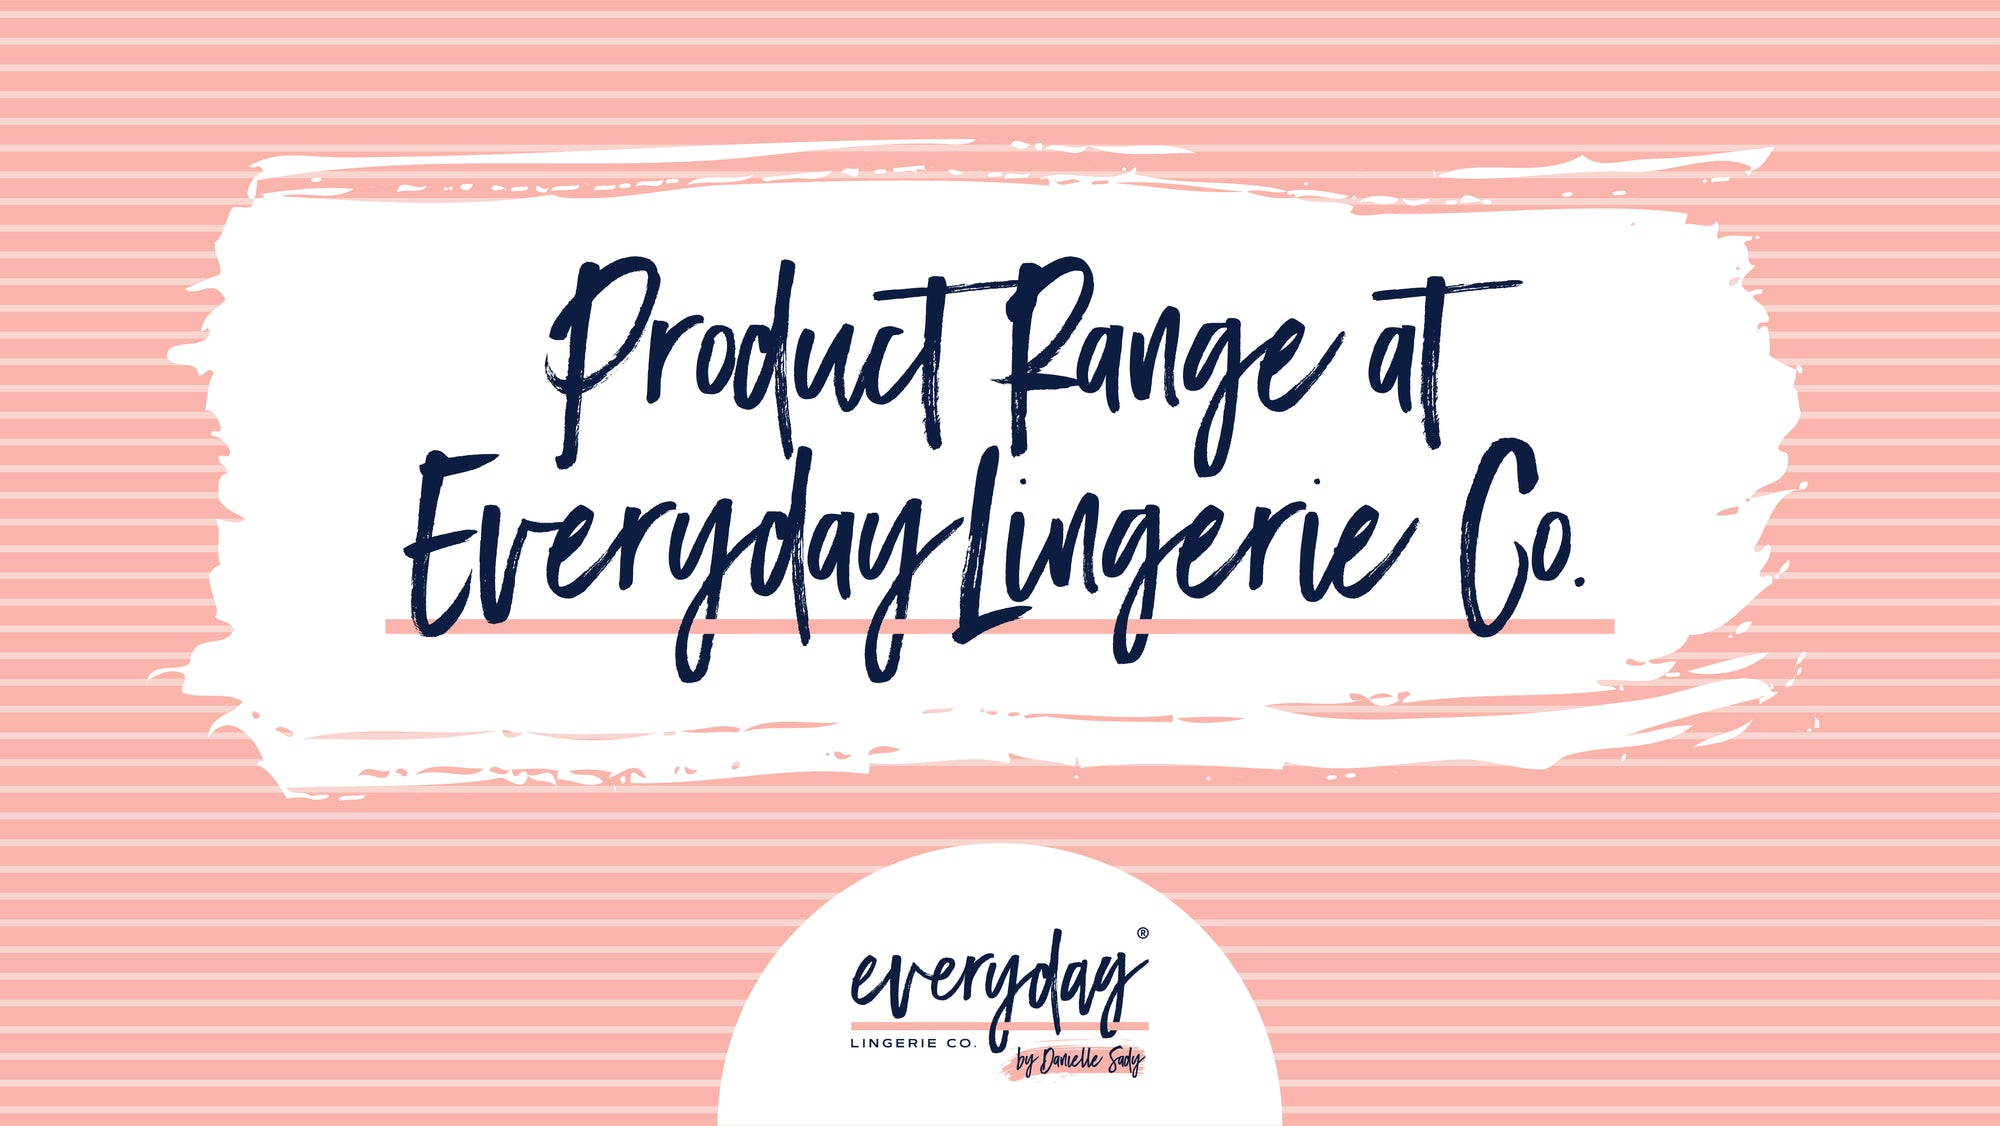 The product Range at Everyday Lingerie Co